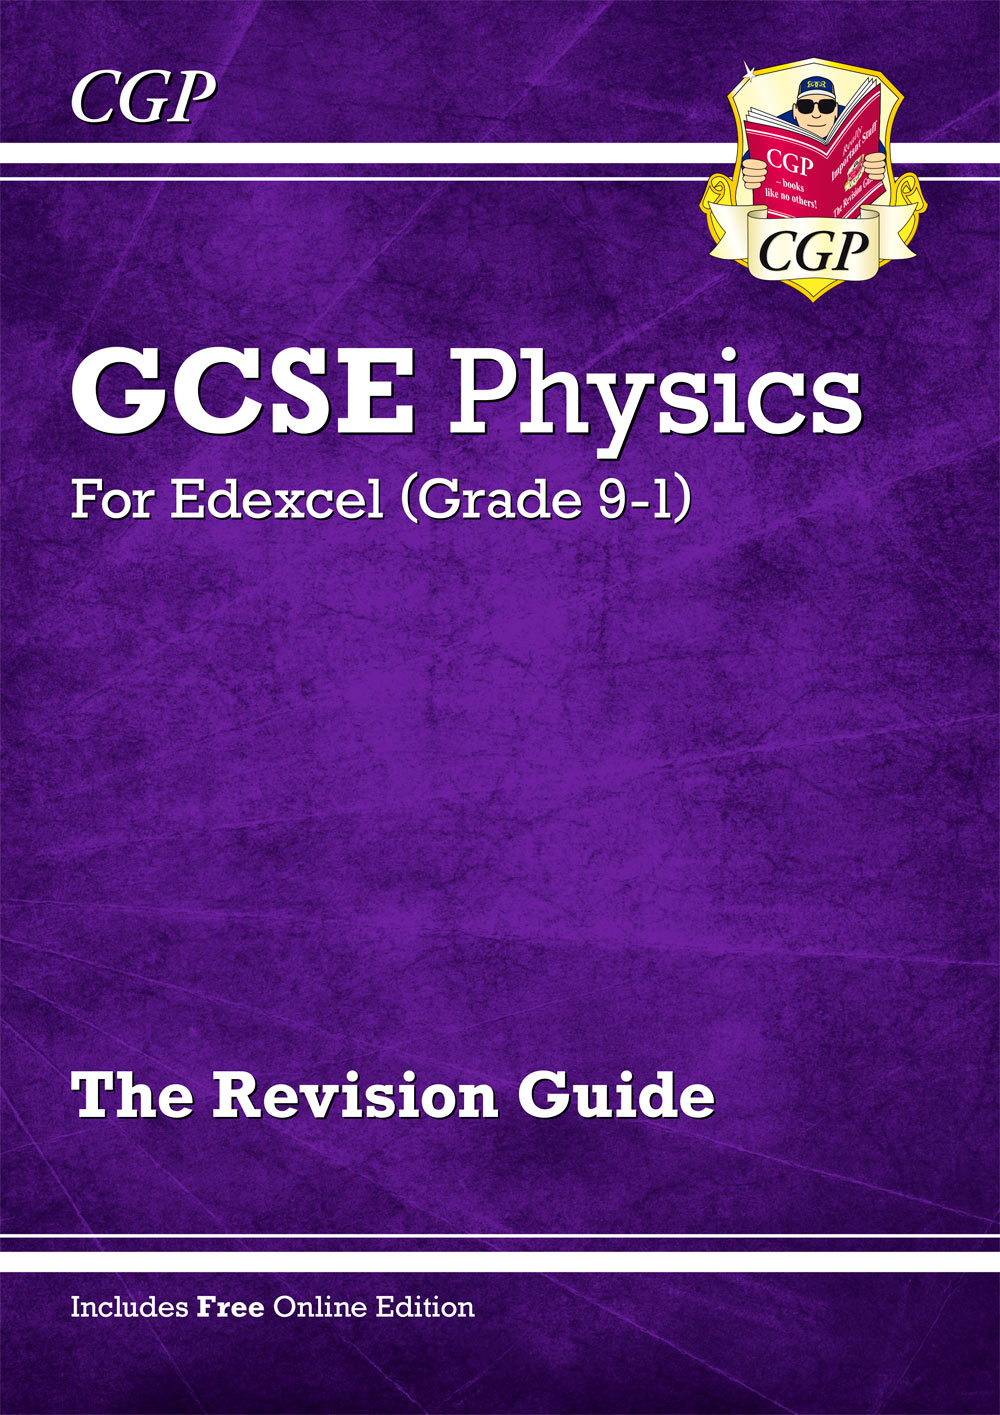 PER45 - Grade 9-1 GCSE Physics: Edexcel Revision Guide with Online Edition